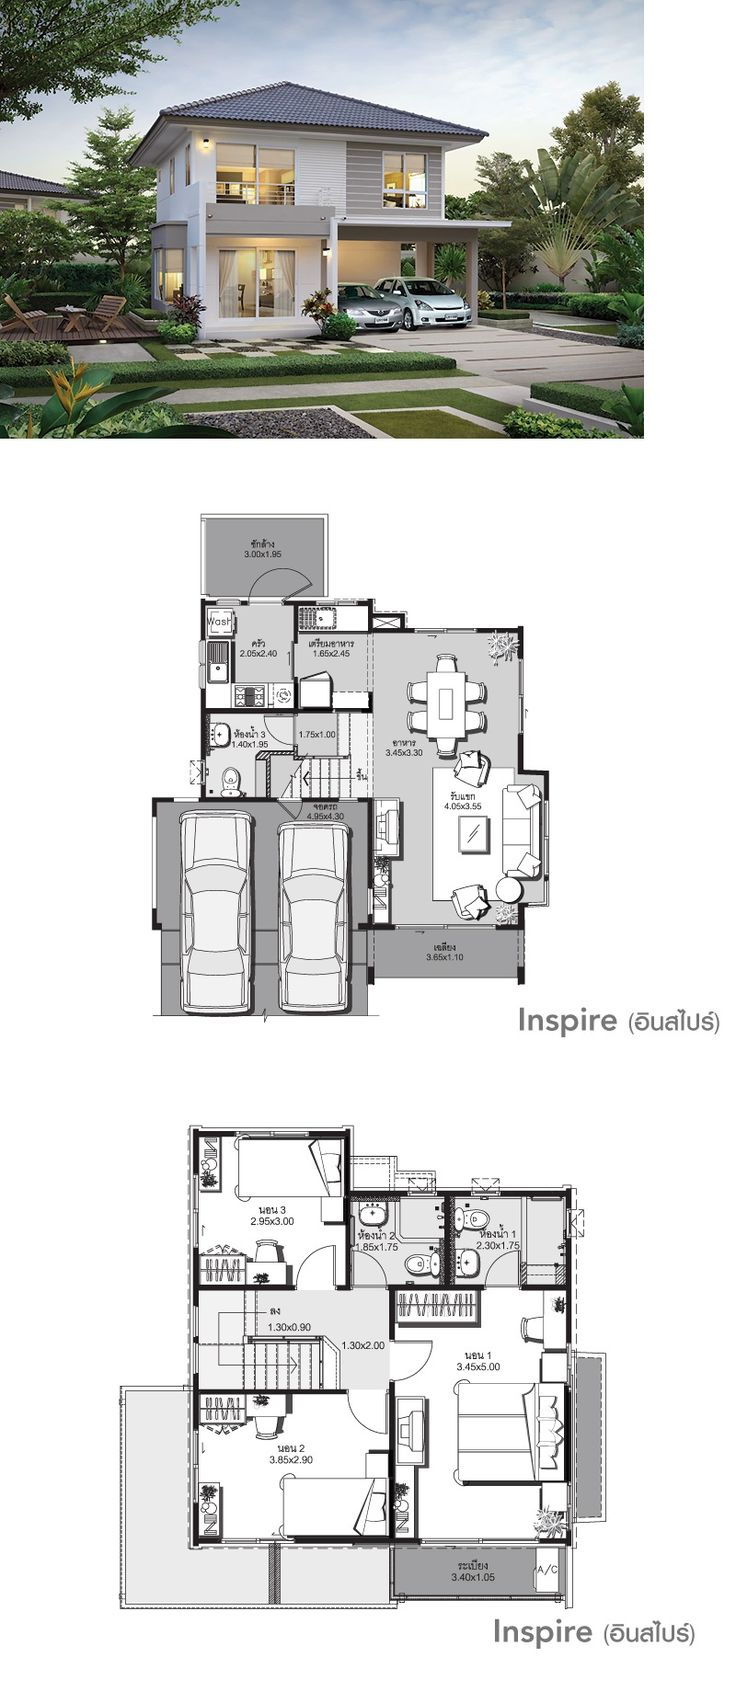 Best 25 duplex plans ideas on pinterest duplex house for Contemporary duplex plans